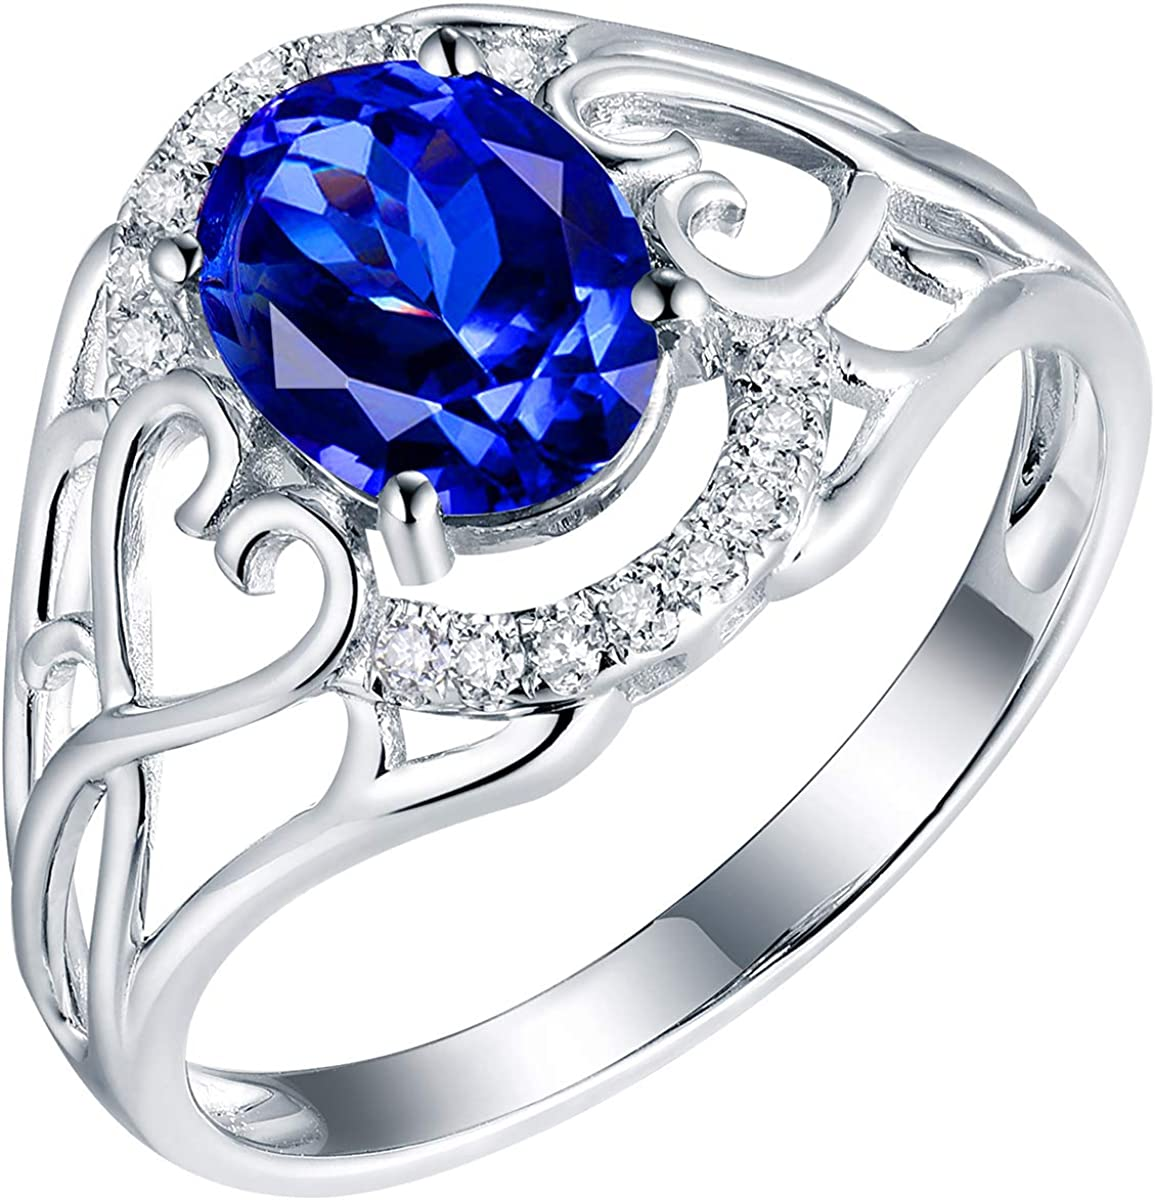 YONG SI Natural OFFicial shop Tanzanite Ring specialty shop with Gold Band Wedding Engagement